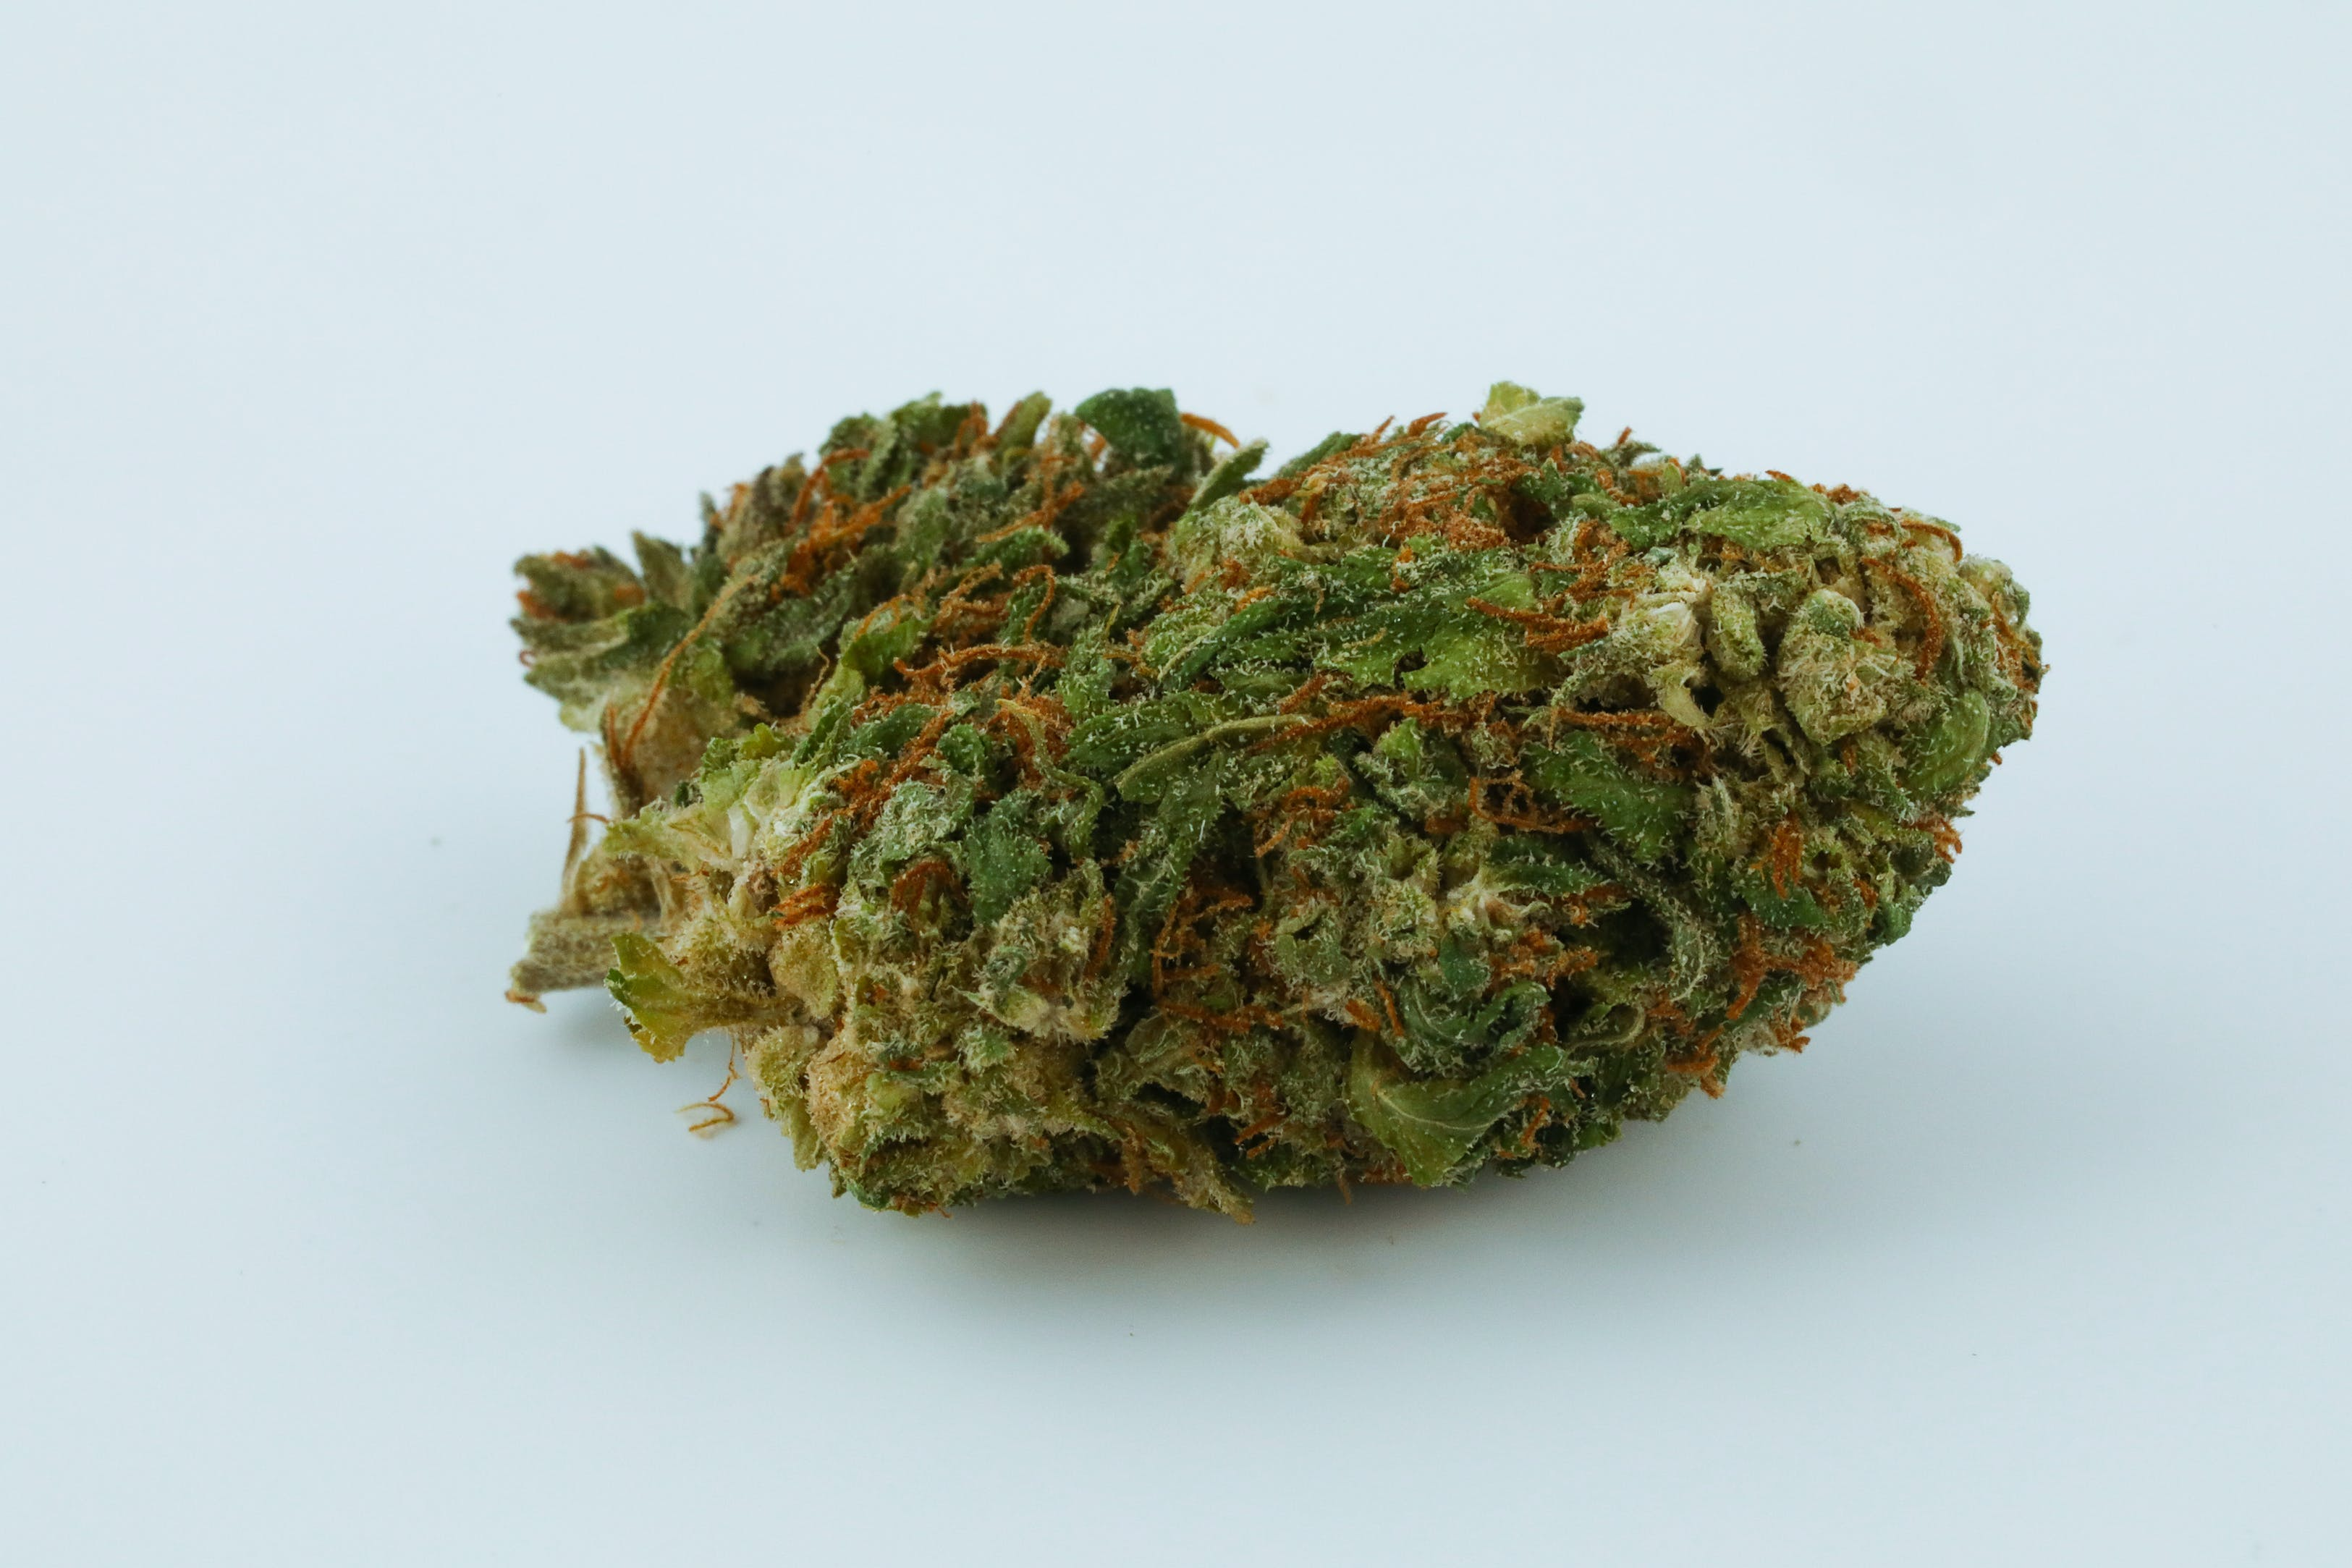 UK Cheese Weed; UK Cheese Cannabis Strain; UK Cheese Hybrid Marijuana Strain